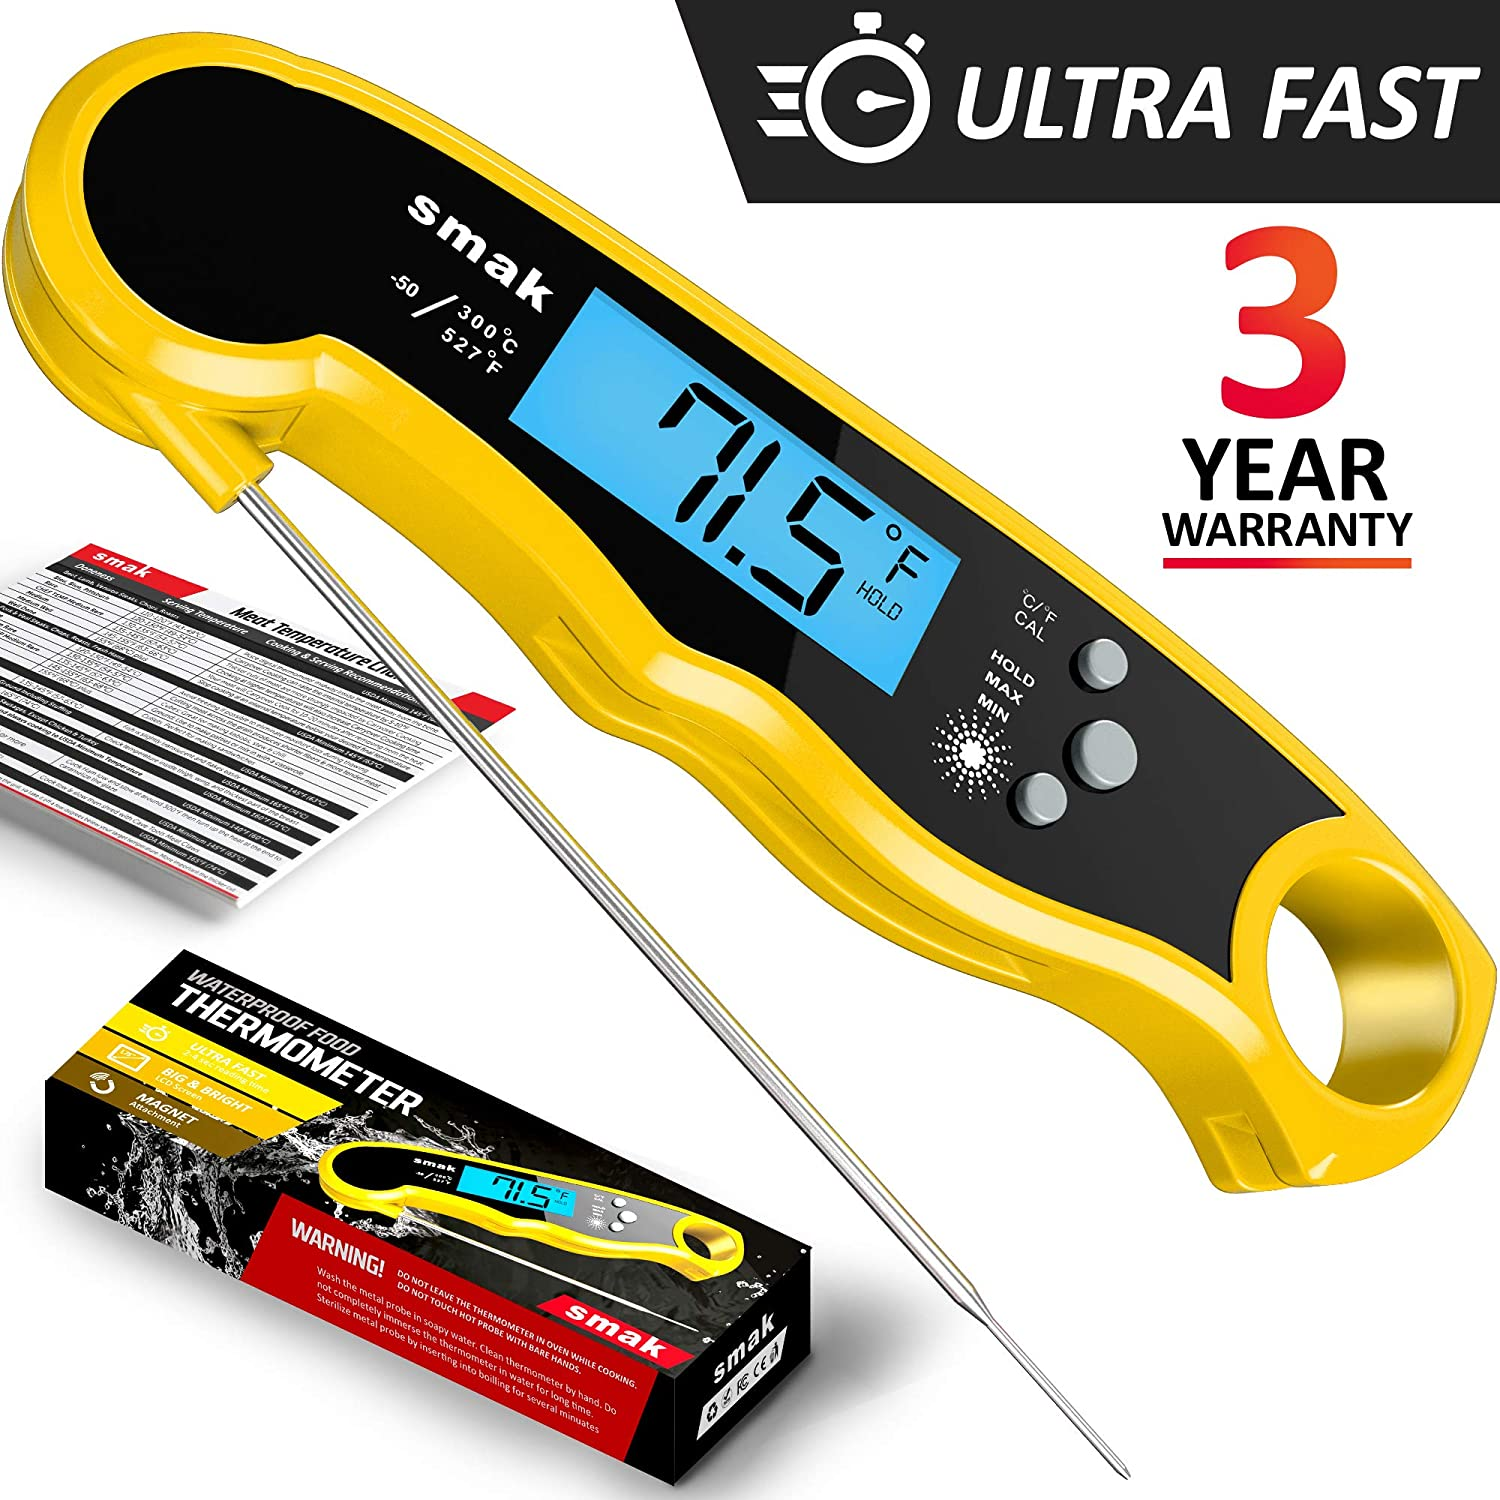 Smak Instant Read Meat Thermometer - Waterproof Kitchen Food Cooking Thermometer with Backlight LCD - Best Super Fast Electric Meat Thermometer Probe for BBQ Grilling Smoker Baking Turkey (Mango)